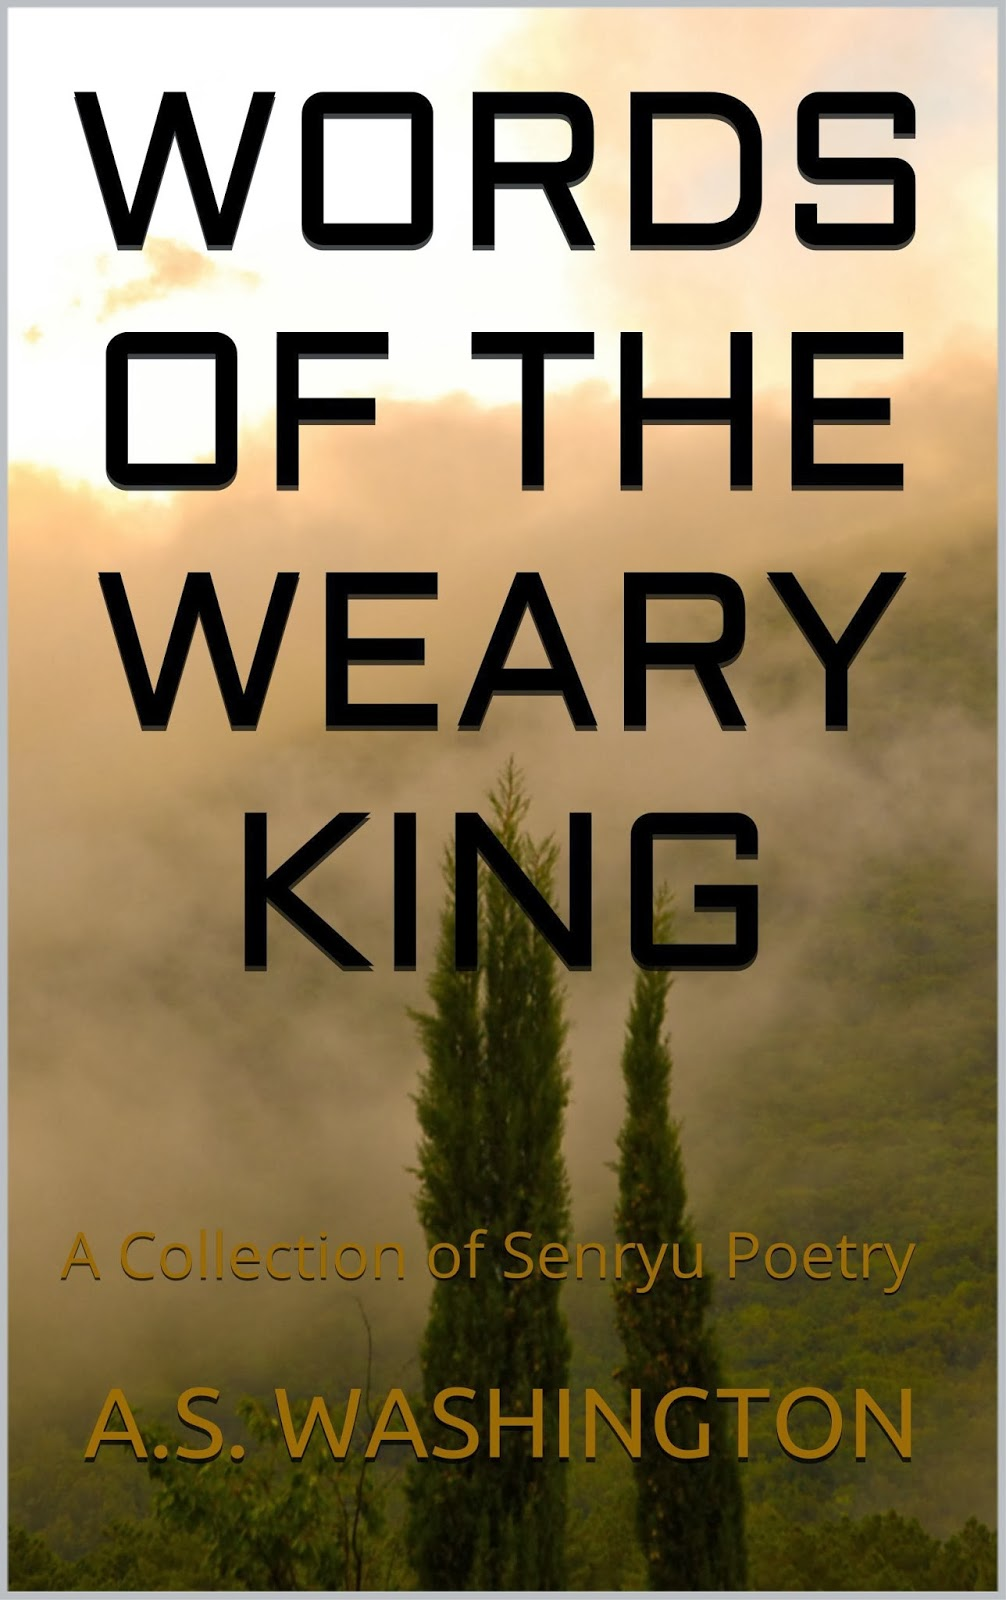 http://www.amazon.com/Words-Weary-King-A-S-Washington-ebook/dp/B00G6O5U7M/ref=sr_1_1?ie=UTF8&qid=1401366823&sr=8-1&keywords=Words+of+the+Weary+King